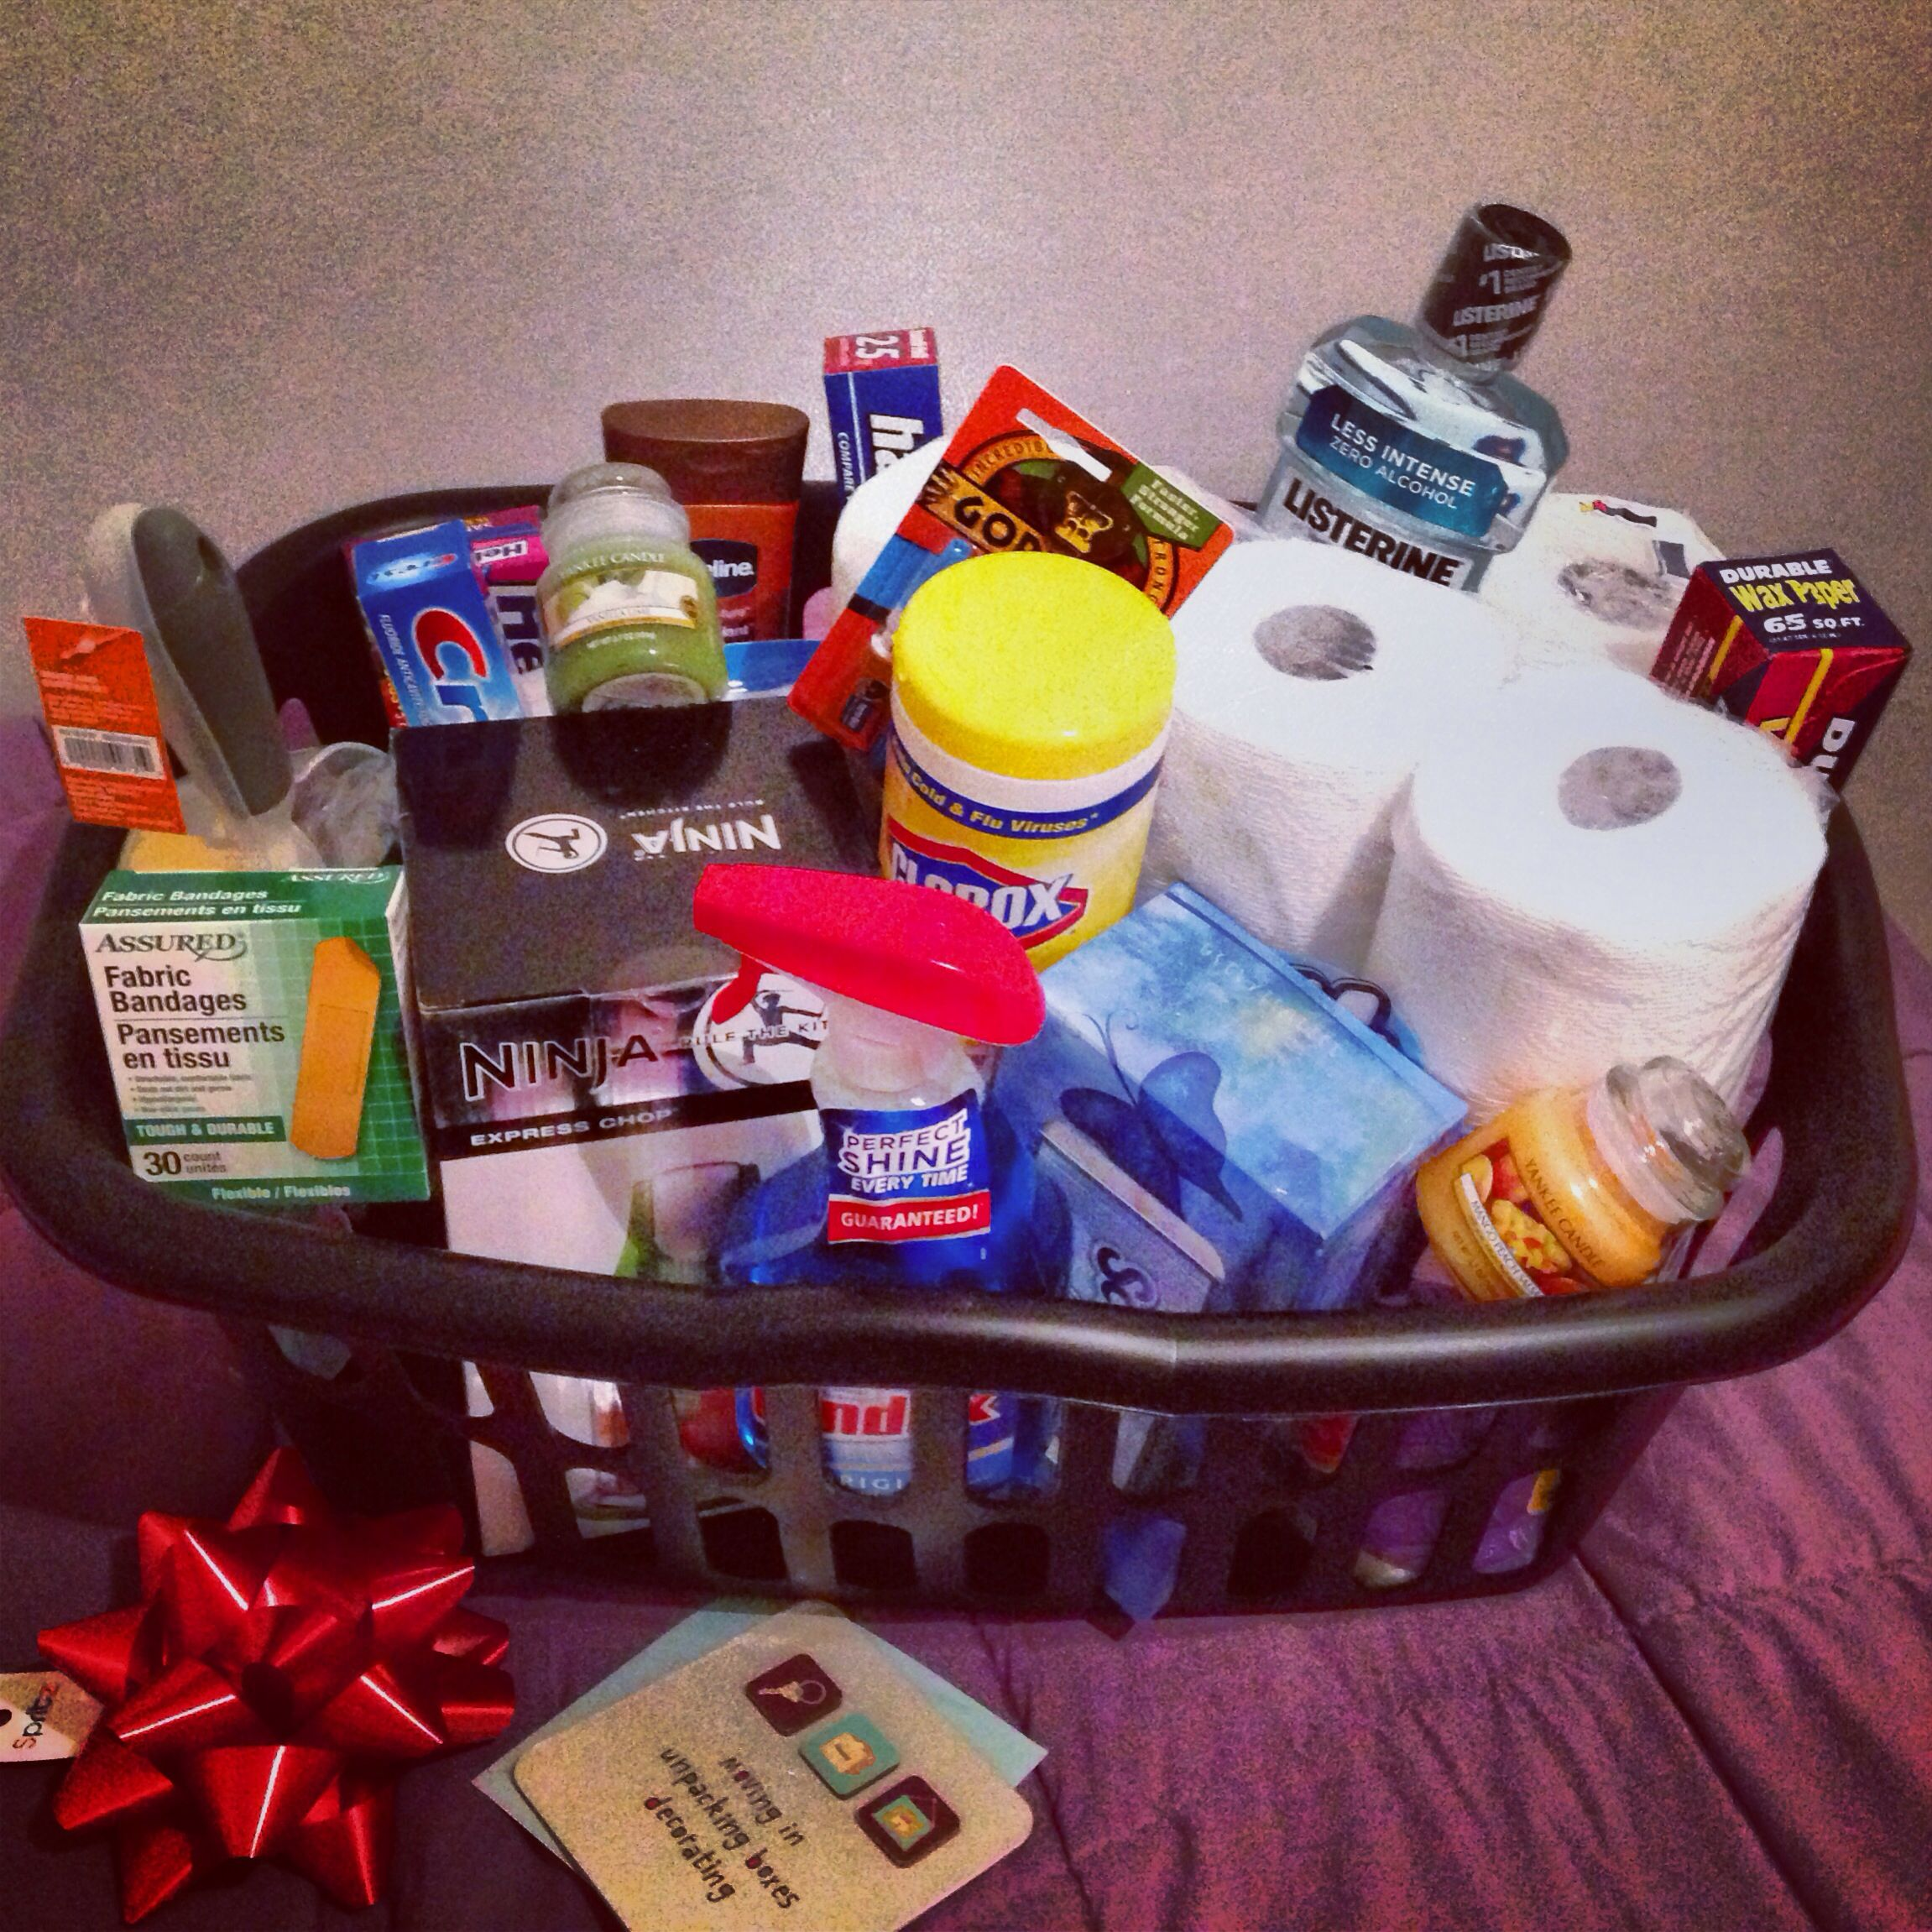 Diy housewarming gift basket include household necessities like diy housewarming gift basket include household necessities like cleaning supplies toilet paper band aids scented candle etc in a laundry basket solutioingenieria Images